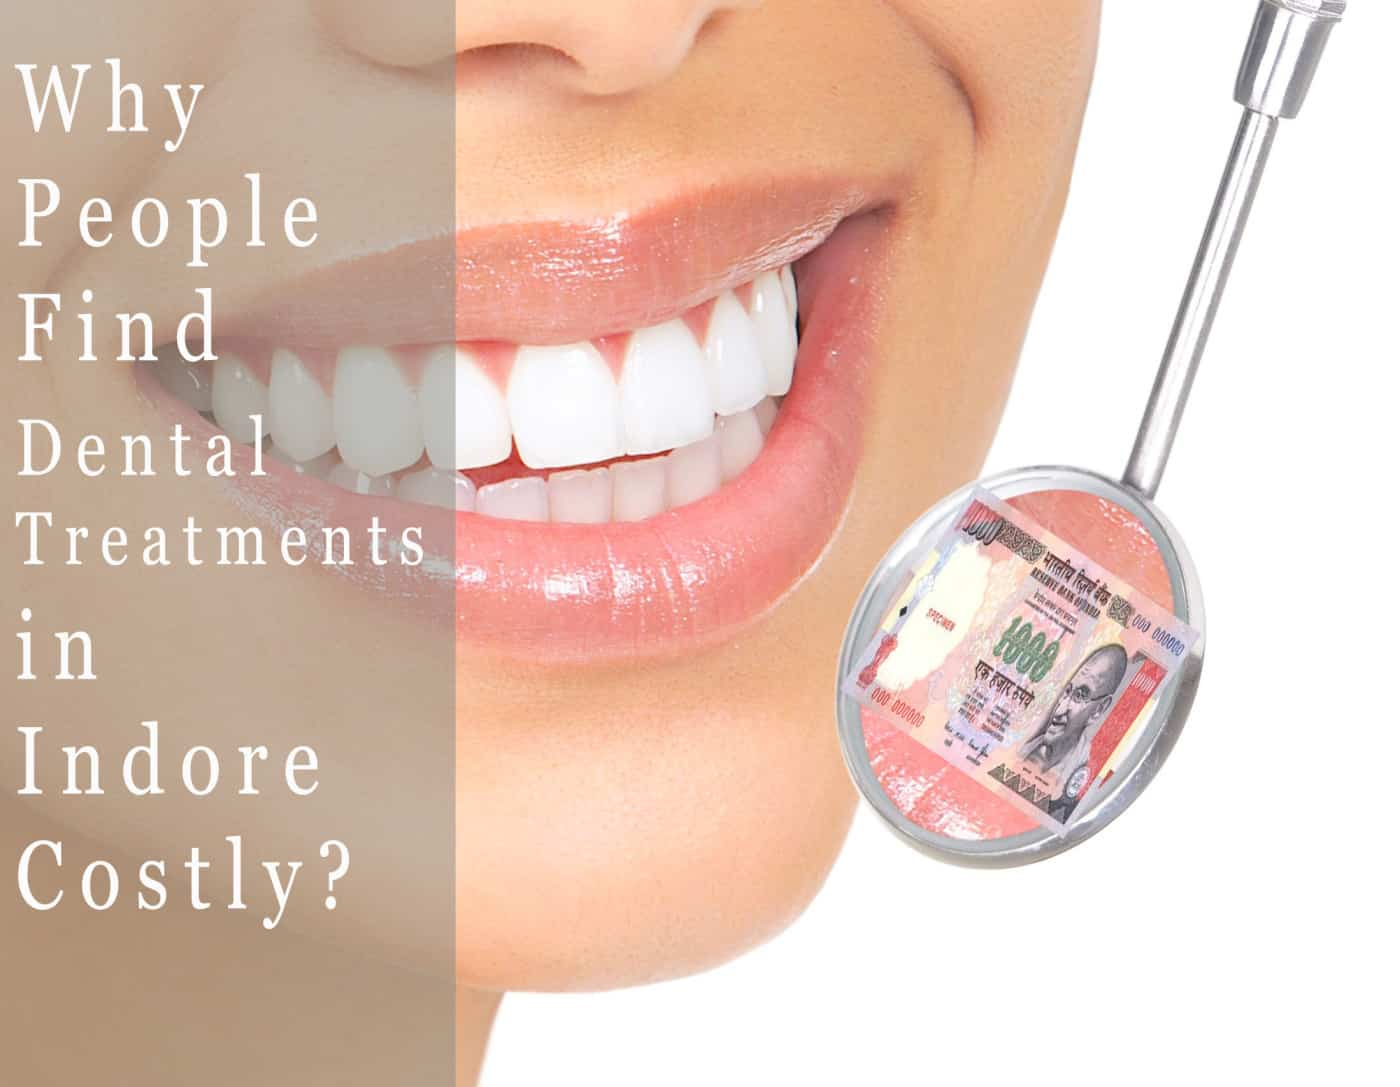 Why People Find Dental Treatments in Indore Costly-Indore HD.psd